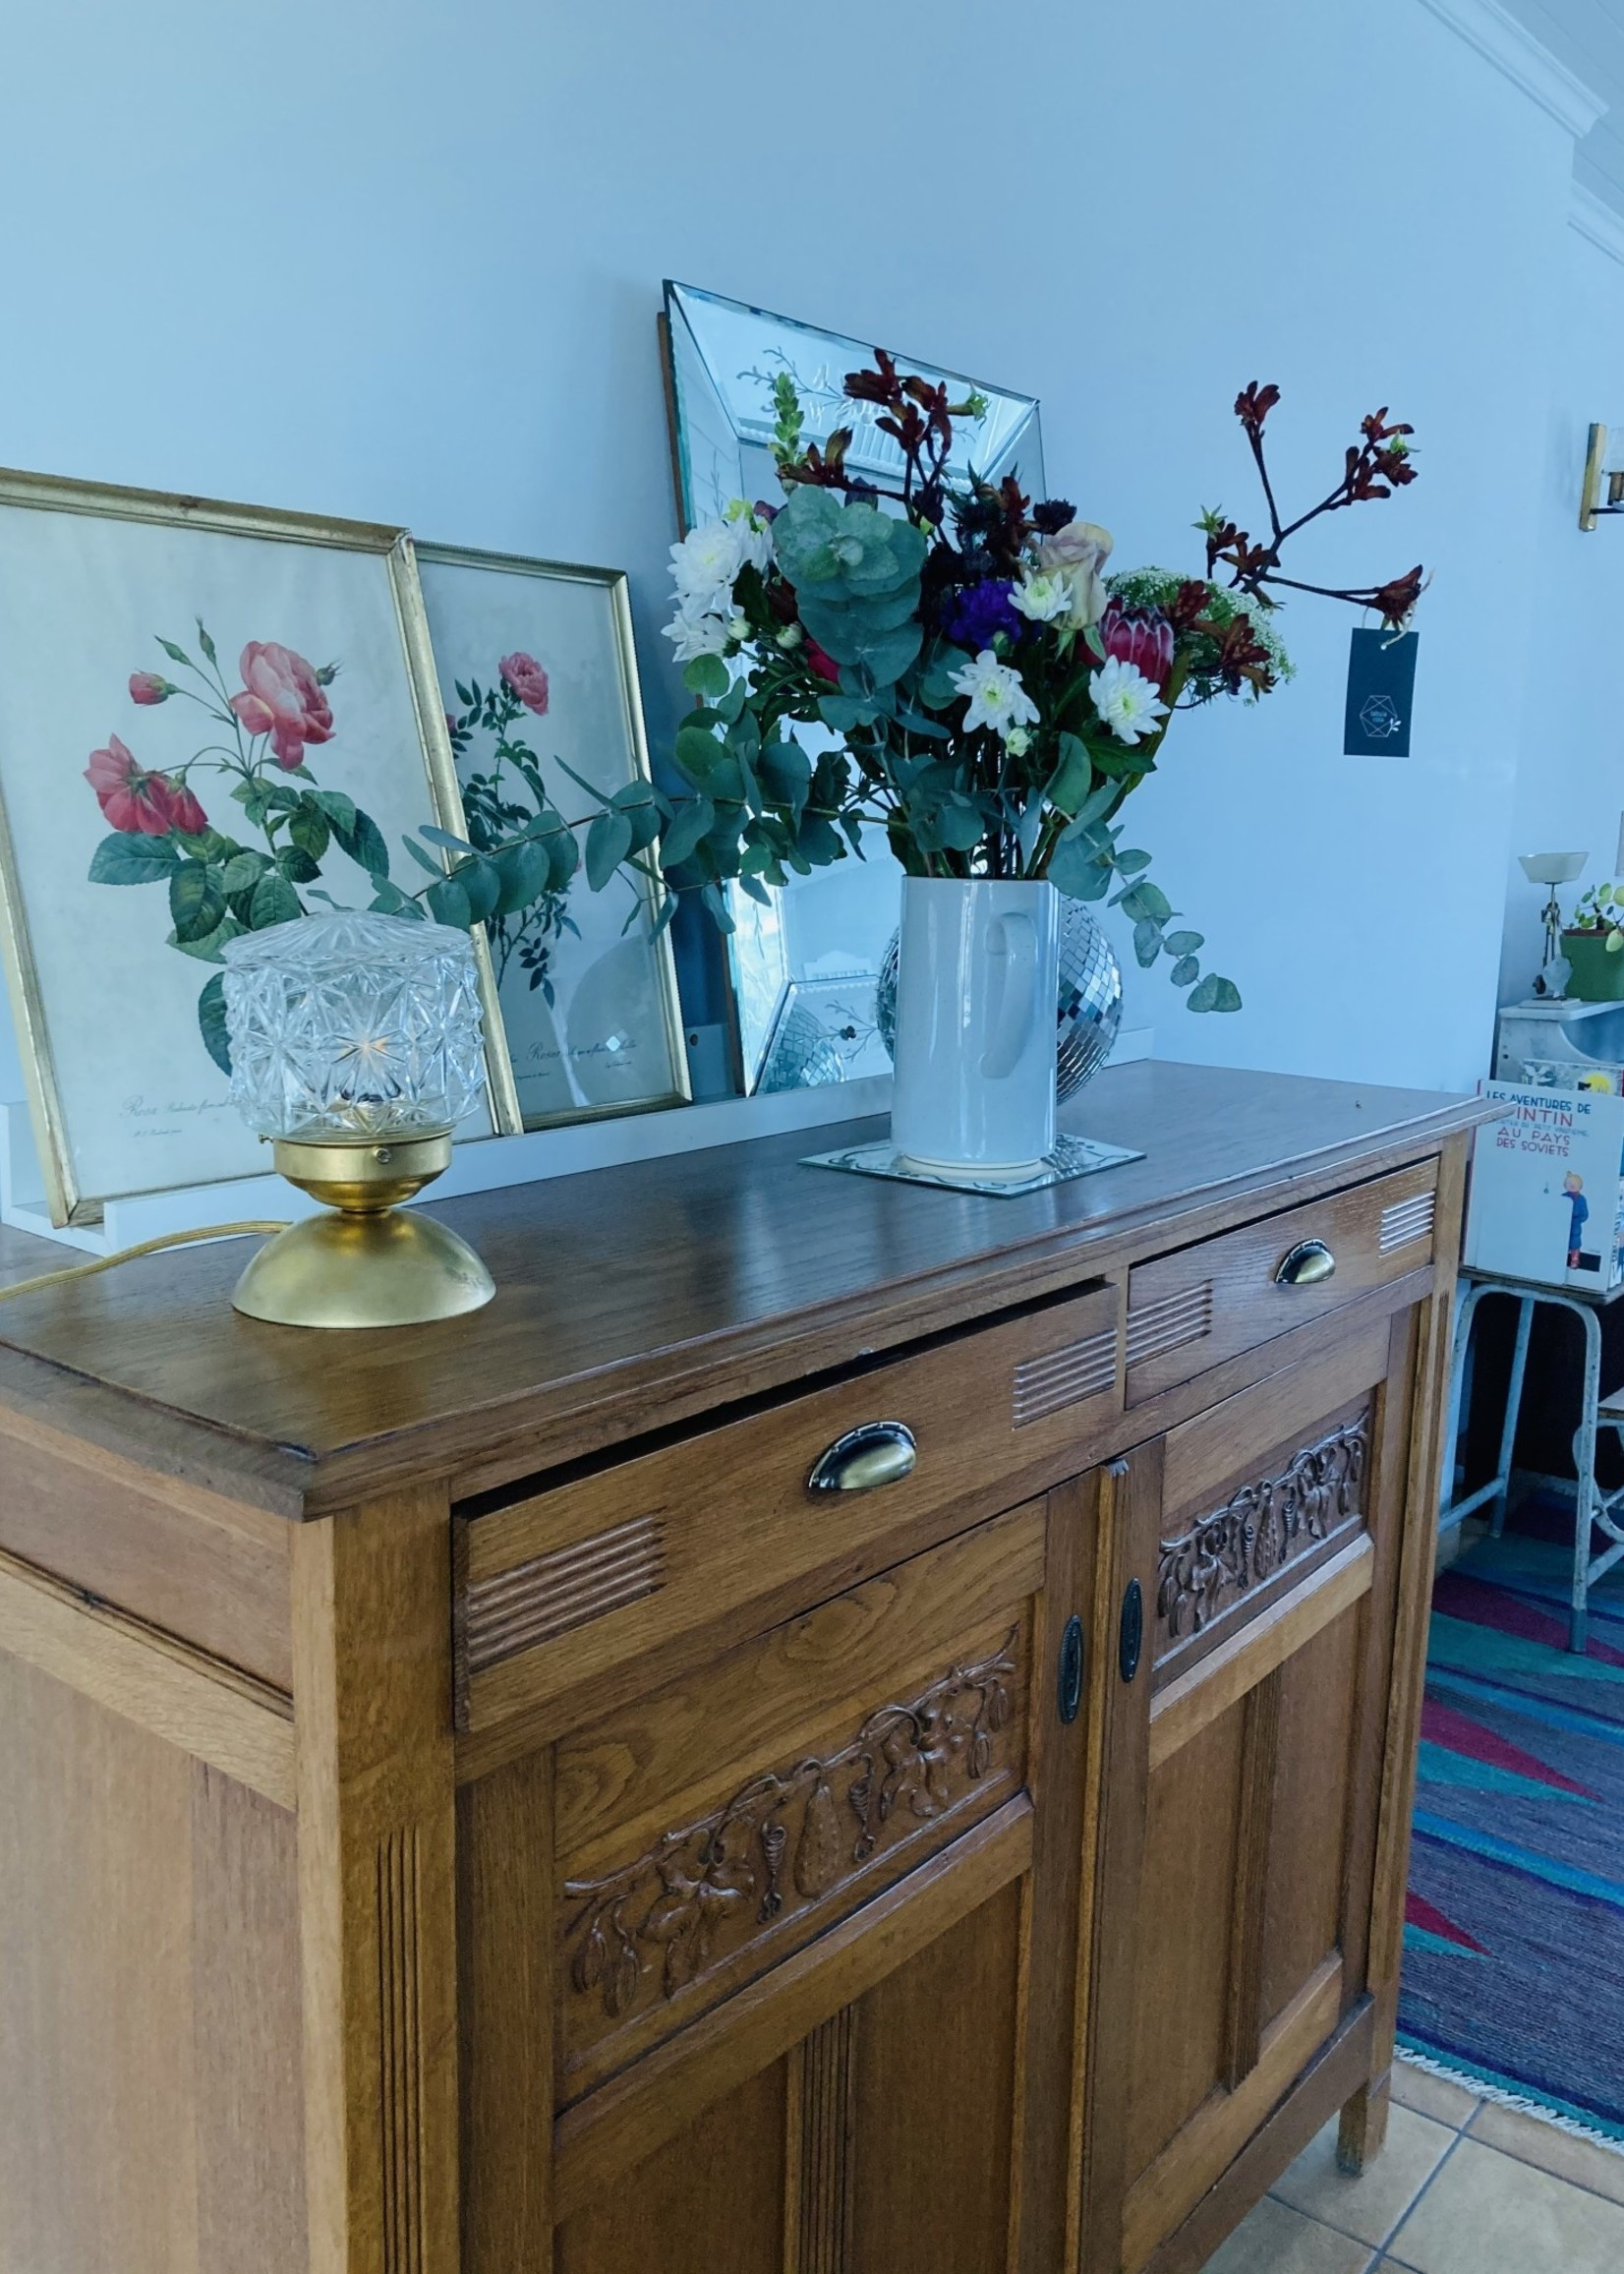 Oak chest with drawers and fruit carved on doors